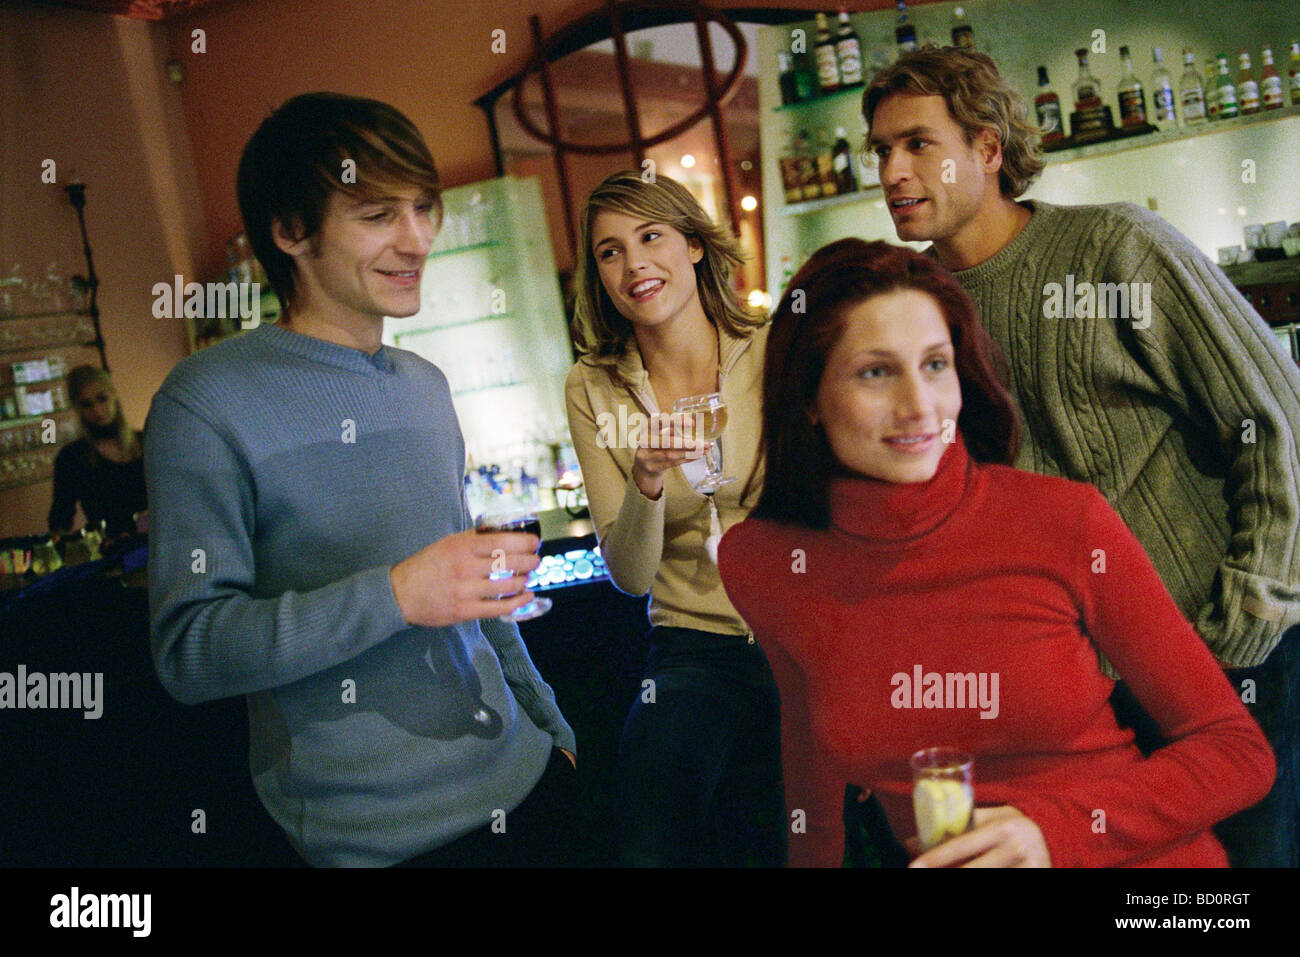 Friends talking, having drinks together at wine bar - Stock Image